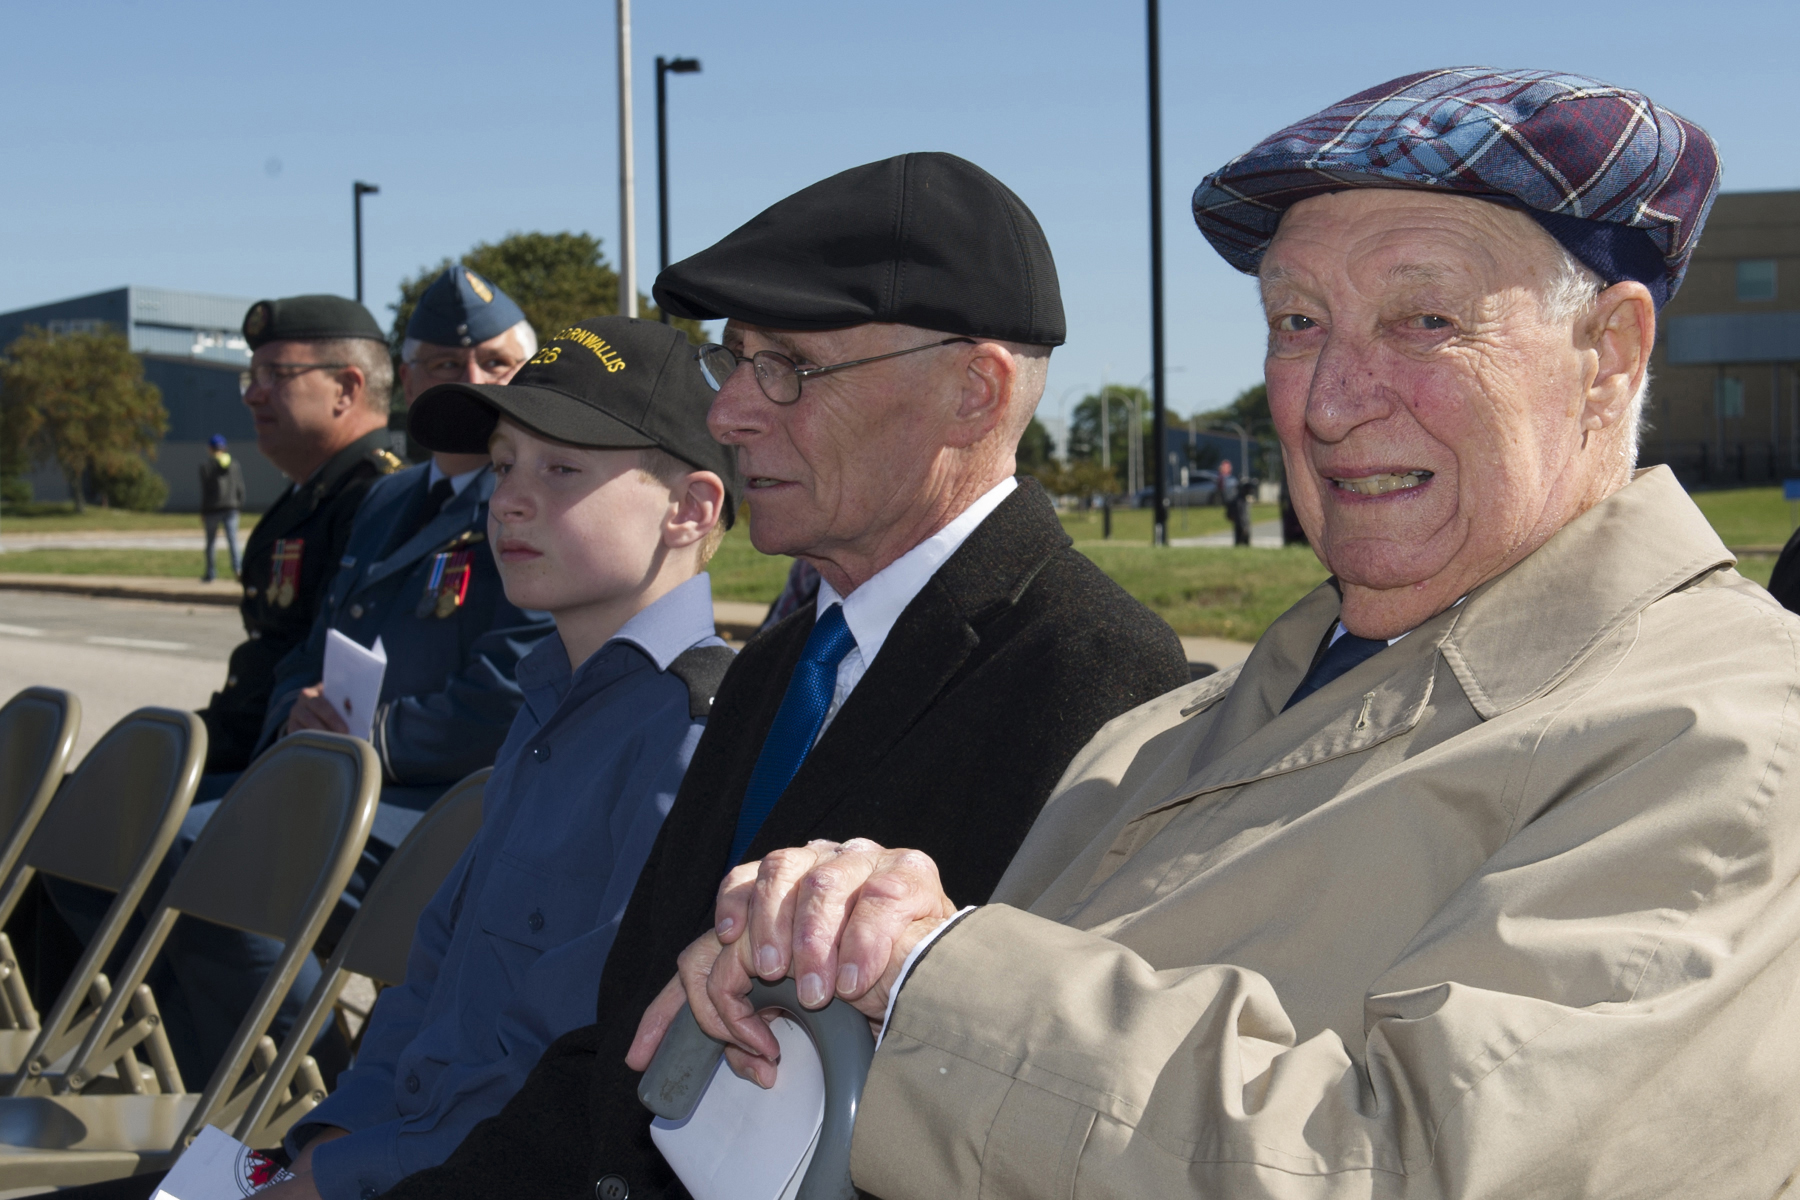 During the 2017 VPI memorial service held on October 1, 2017, at 14 Wing Greenwood, Nova Scotia, Colonel (retired) Herb Smale (foreground), founder of VP International and a former commander of 14 Wing, sits with his son, Pat (centre) and grandson Noah. PHOTO: Master Corporal Rory Wilson, GD14-2017-0602-001